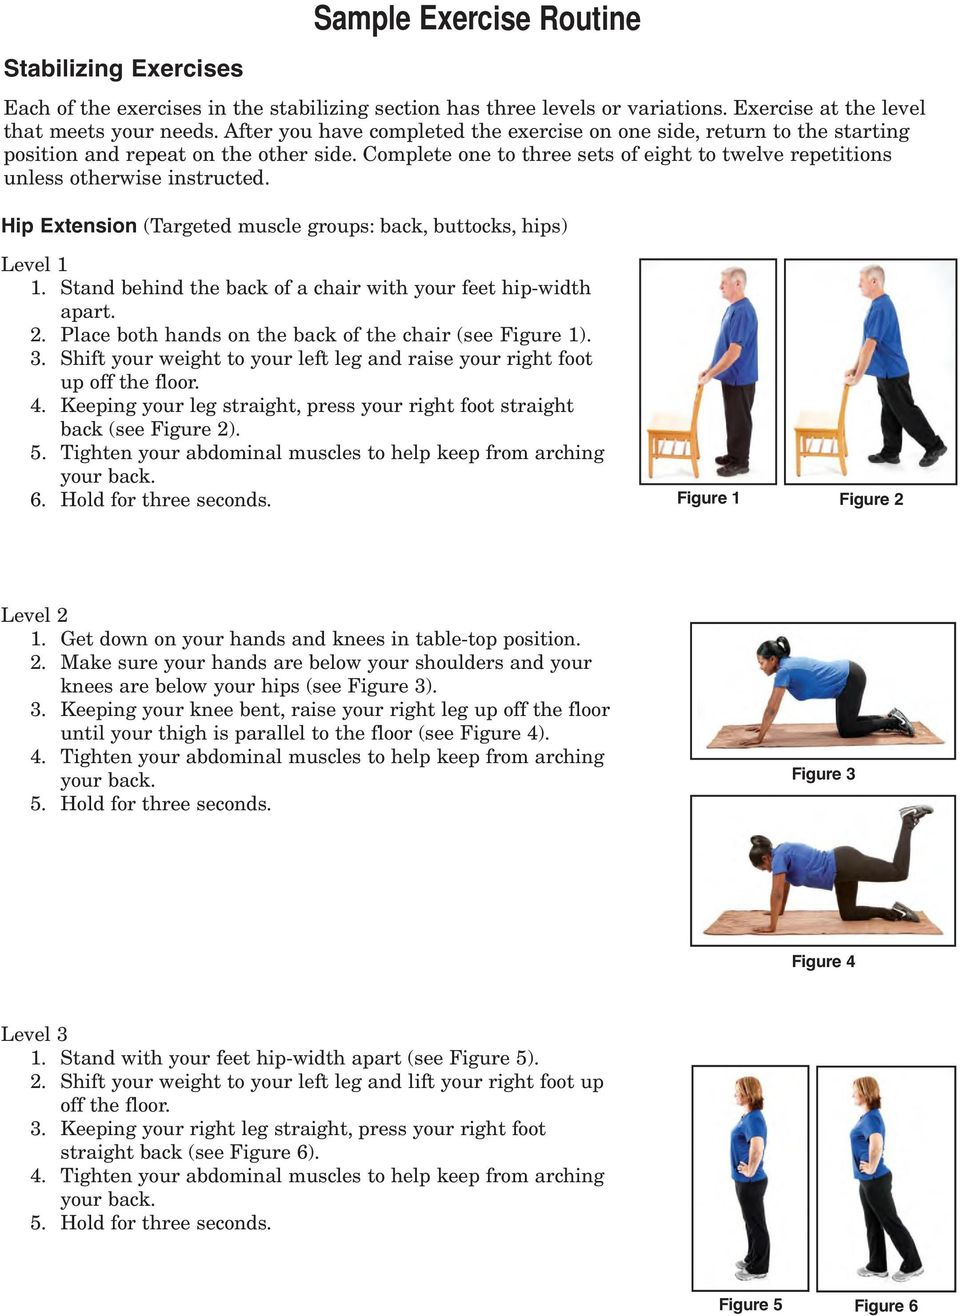 Hip Extension (Targeted muscle groups: back, buttocks, hips) 1. Stand behind the back of a chair with your feet hip-width apart. 2. Place both hands on the back of the chair (see Figure 1). 3.